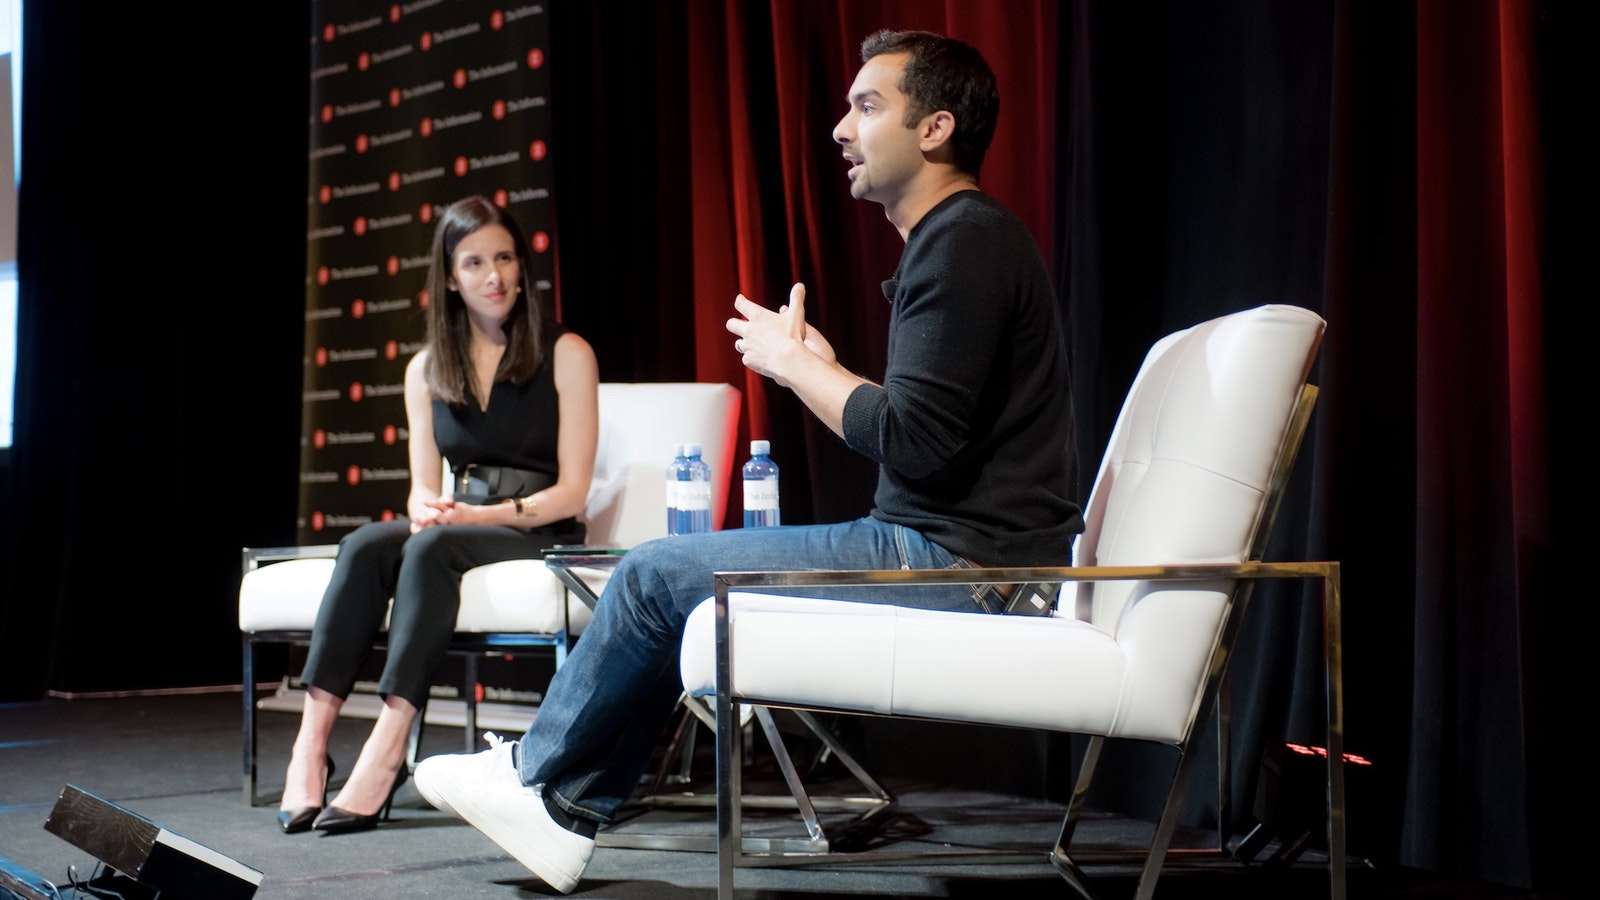 Instacart CEO Apoorva Mehta with The Information's Jessica Lessin at The Information's Subscriber Summit on Thursday. Photo by Angie Silvy